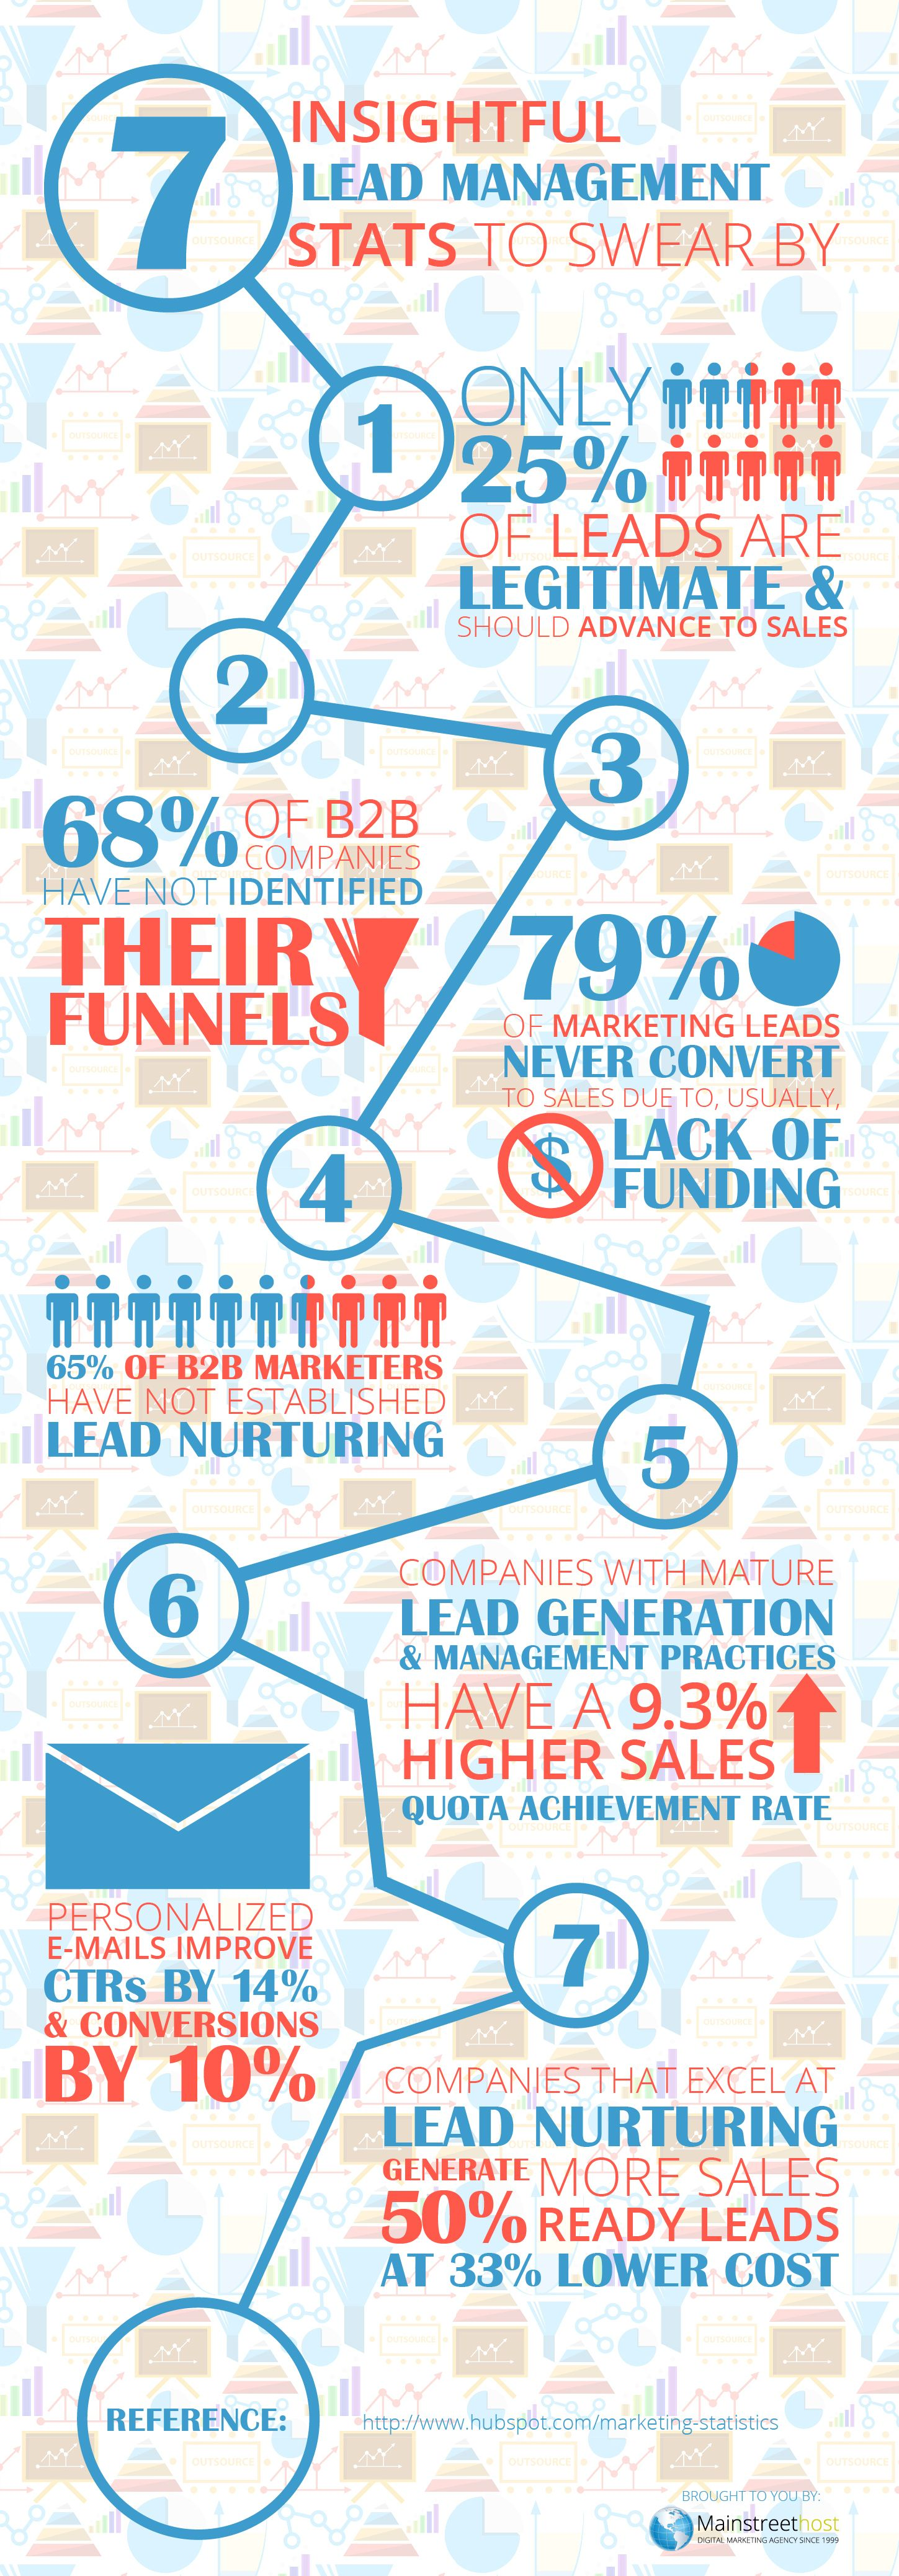 7 Insightful Lead Management Stats to Swear By #infographic